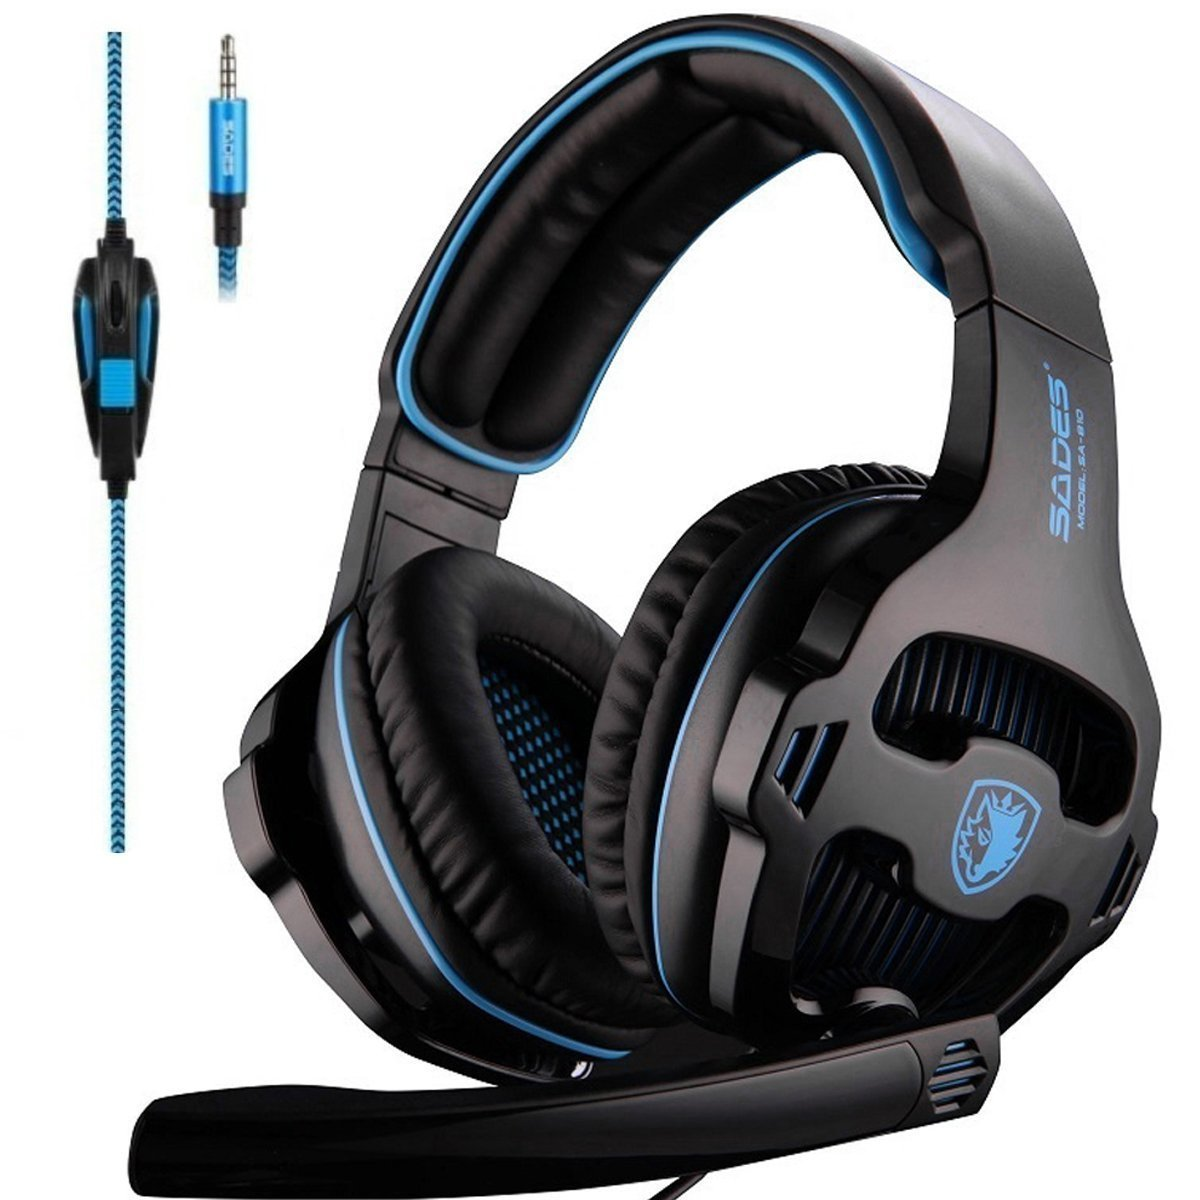 SADES SA810 PS4 Xbox One Headset Over Ear Stereo Gaming Headset Bass Gaming Headphones with Noise Isolation Microphone (Black&Blue)